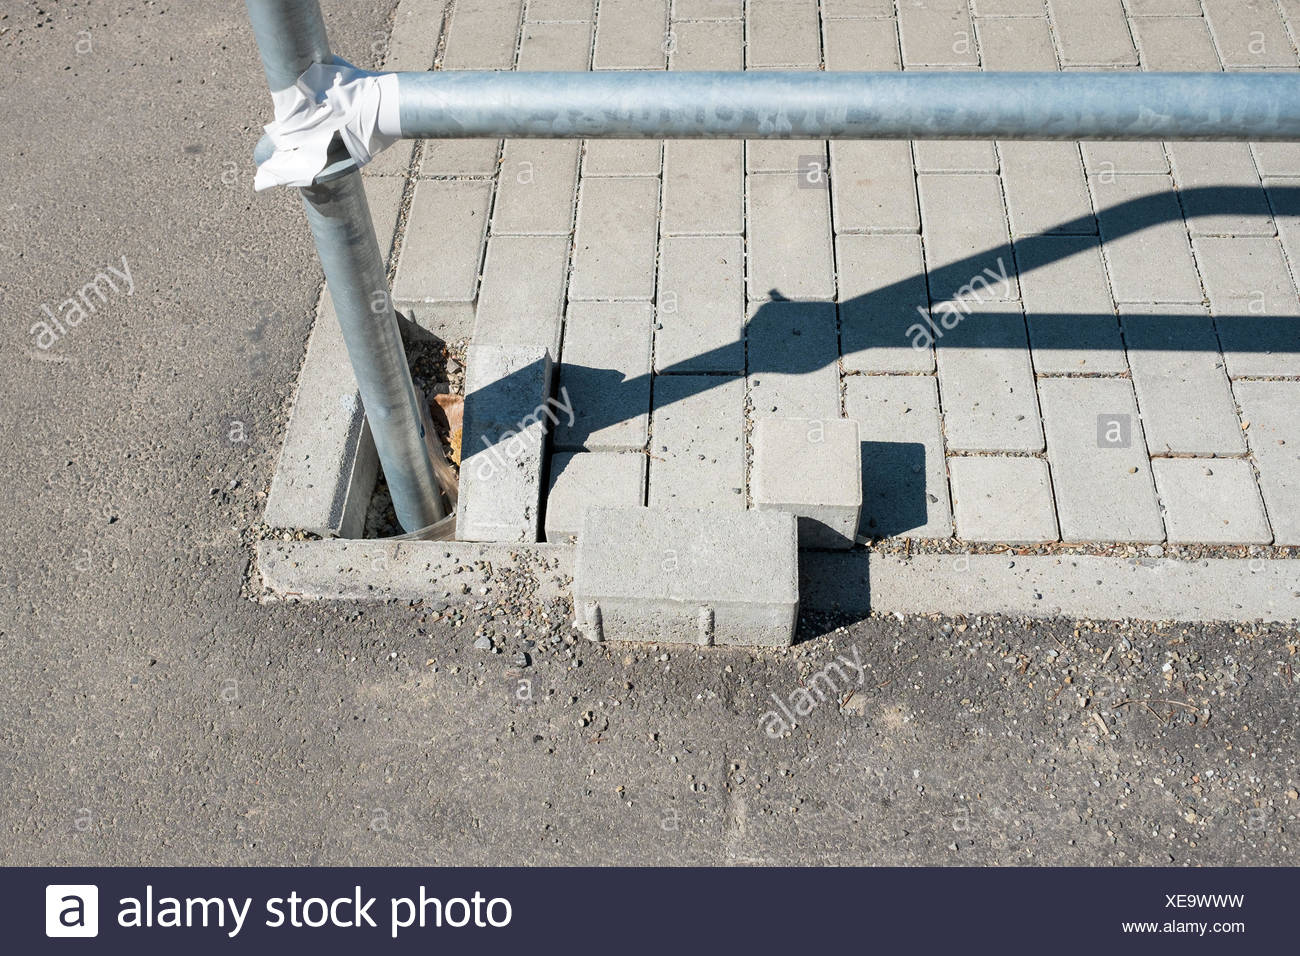 railings made of steel anchored in concrete paving stone - Stock Image